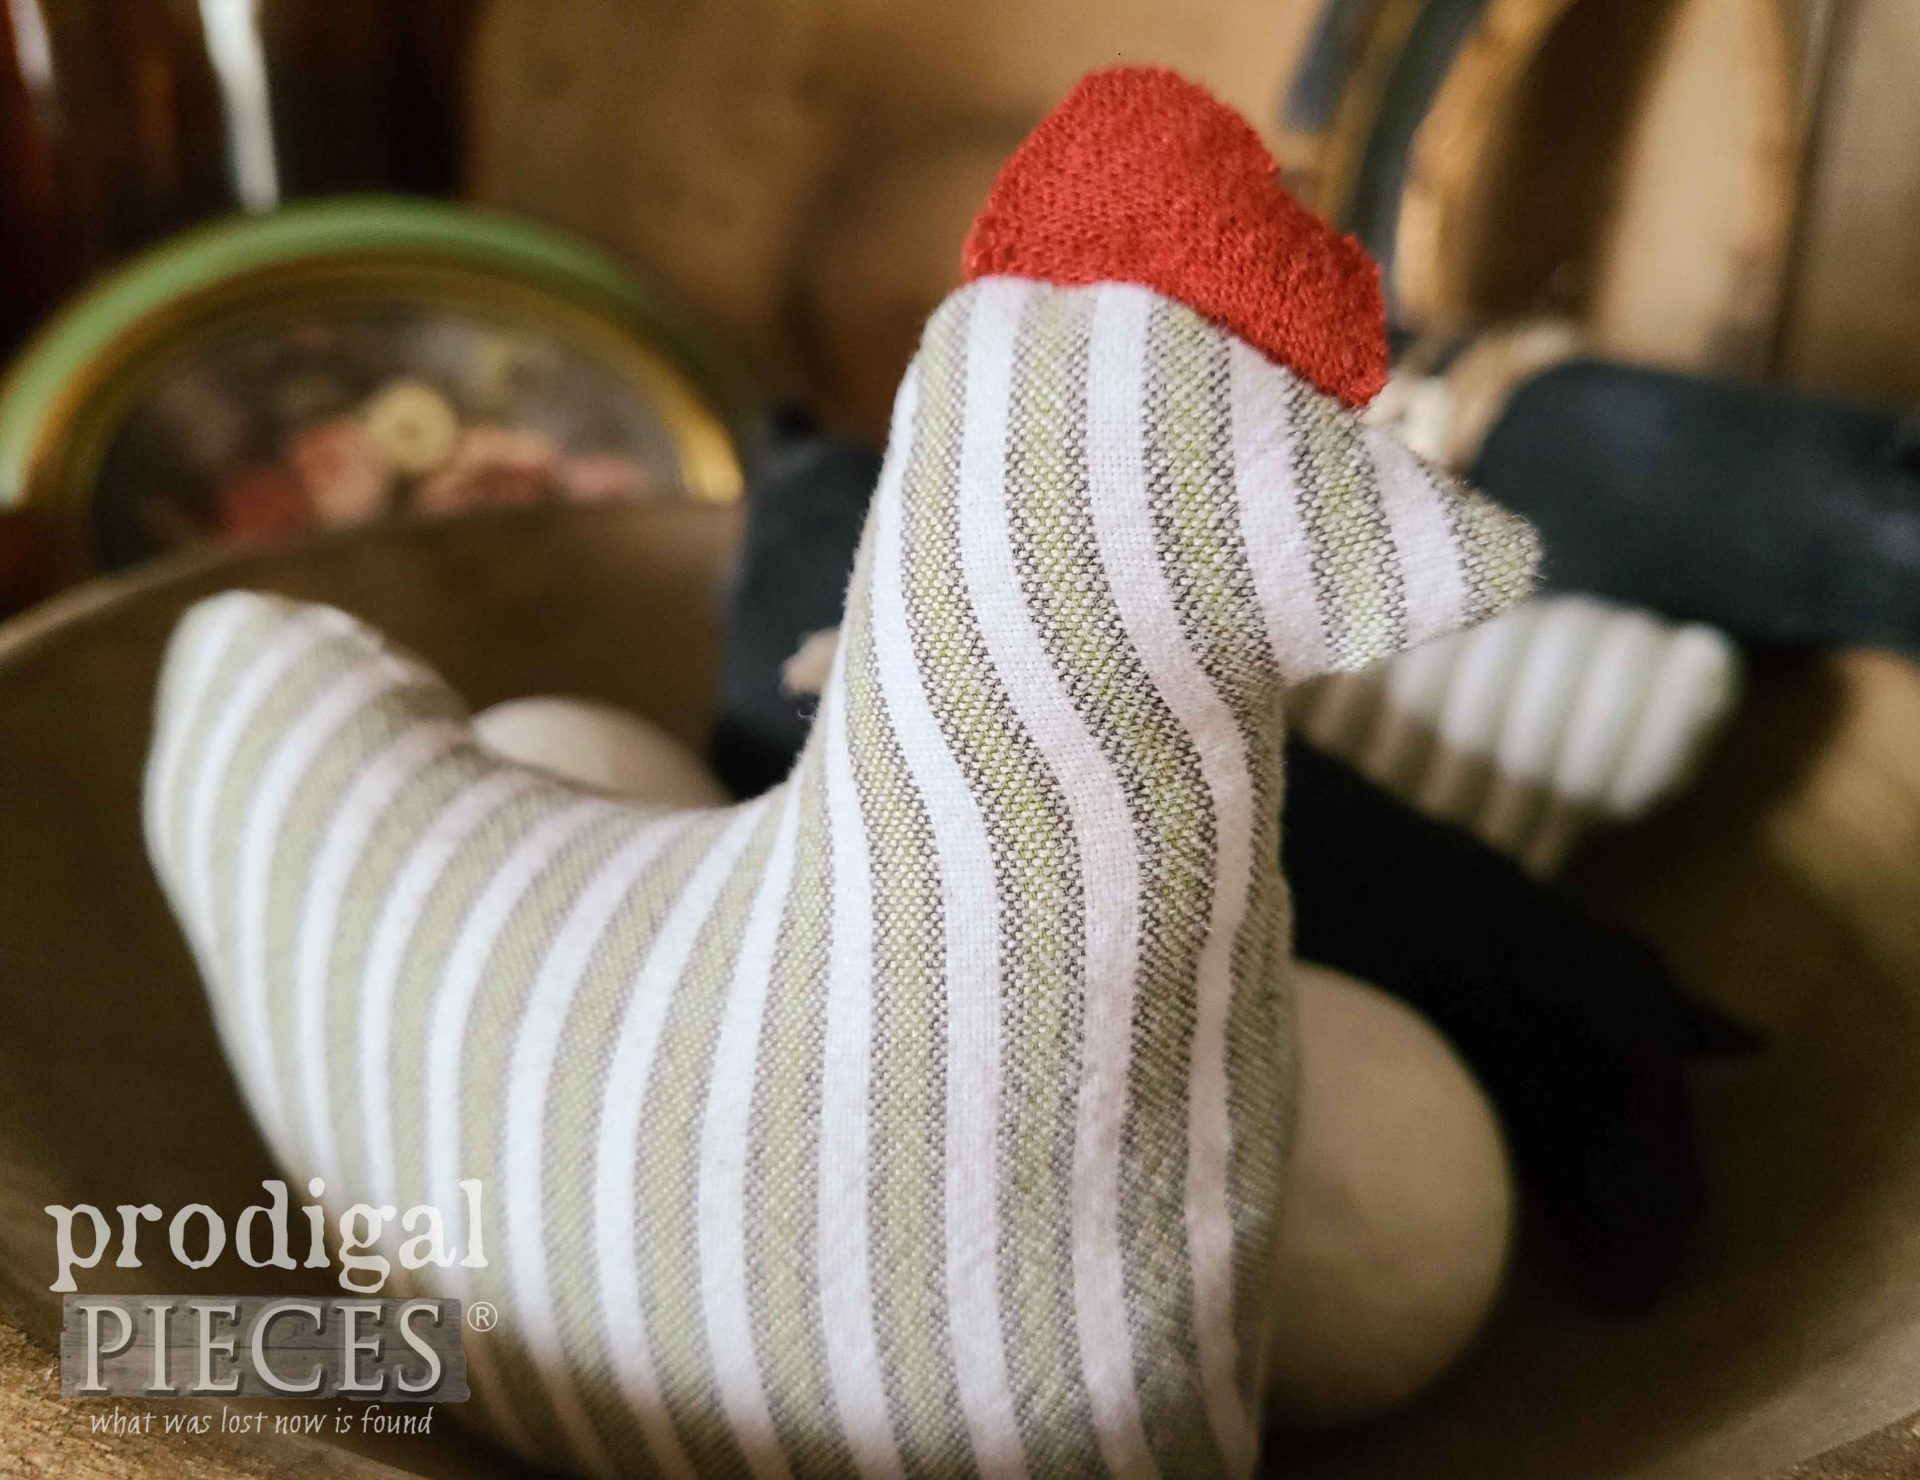 Striped Stuffed Chicken for Upcycled Bowl Filler from Refashioned Clothes by Larissa of Prodigal Pieces   prodigalpieces.com #prodigalpieces #diy #sewing #crafts #farmhouse